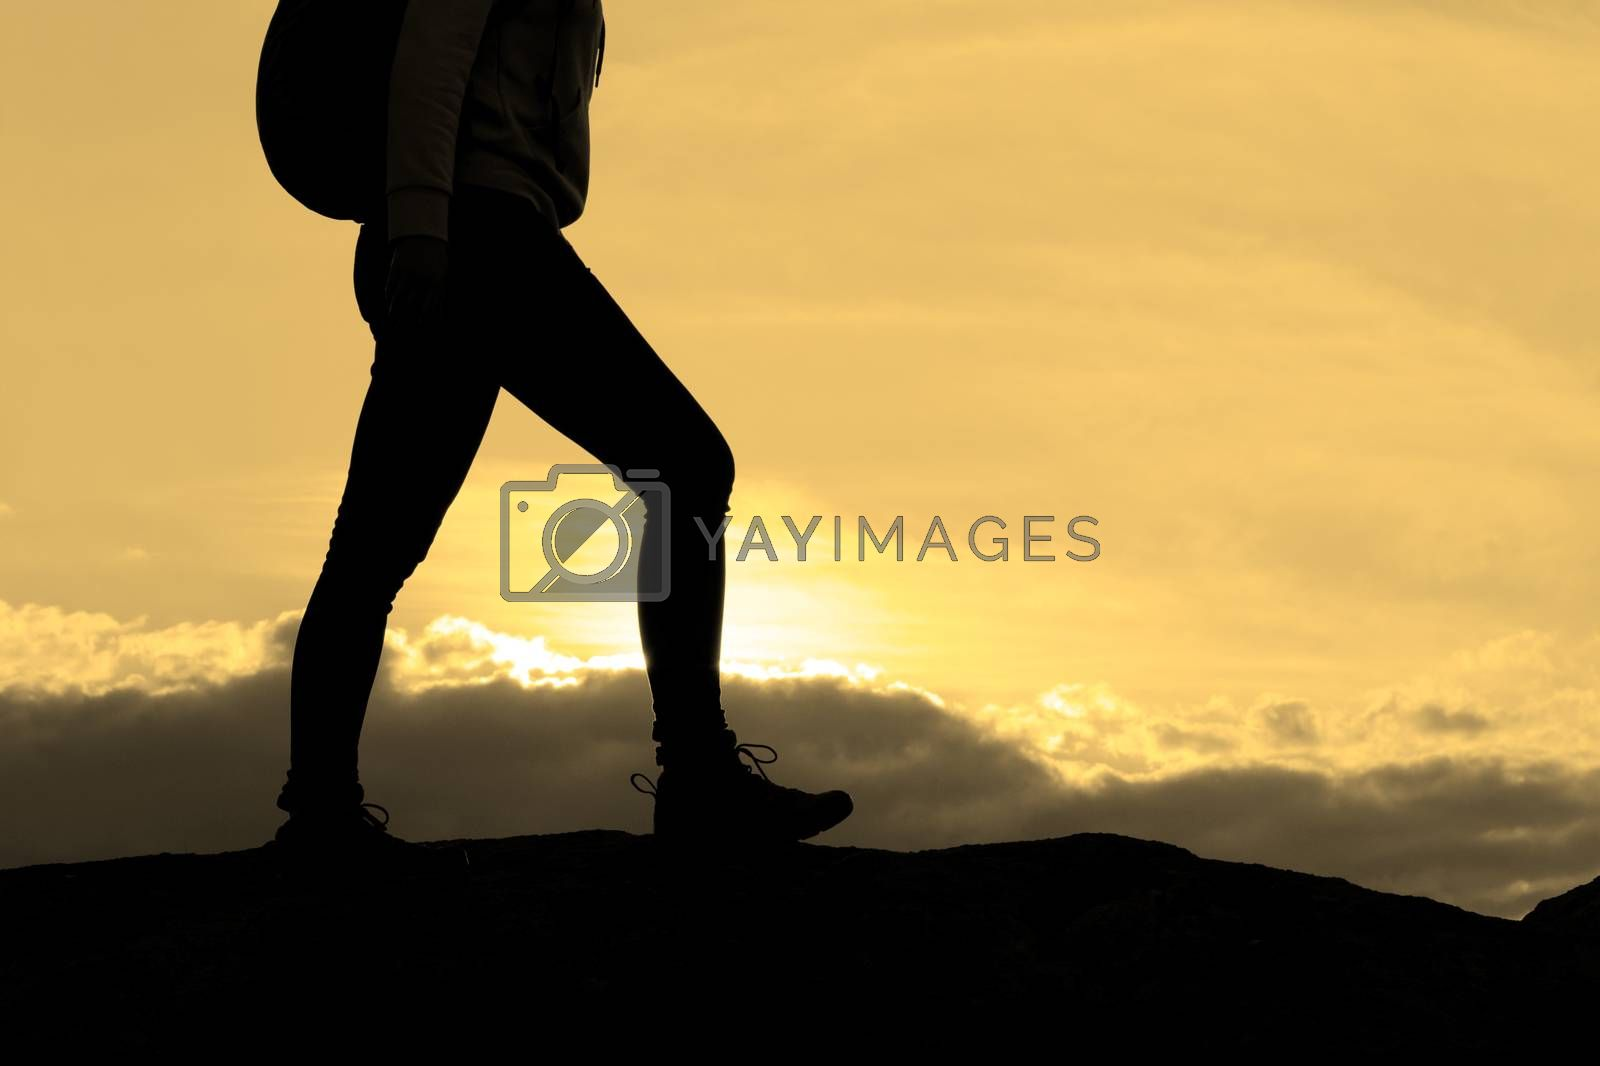 Hiker's Legs on the Rocky Trail at Warm Summer Sunset. Travel and Adventure Concept.